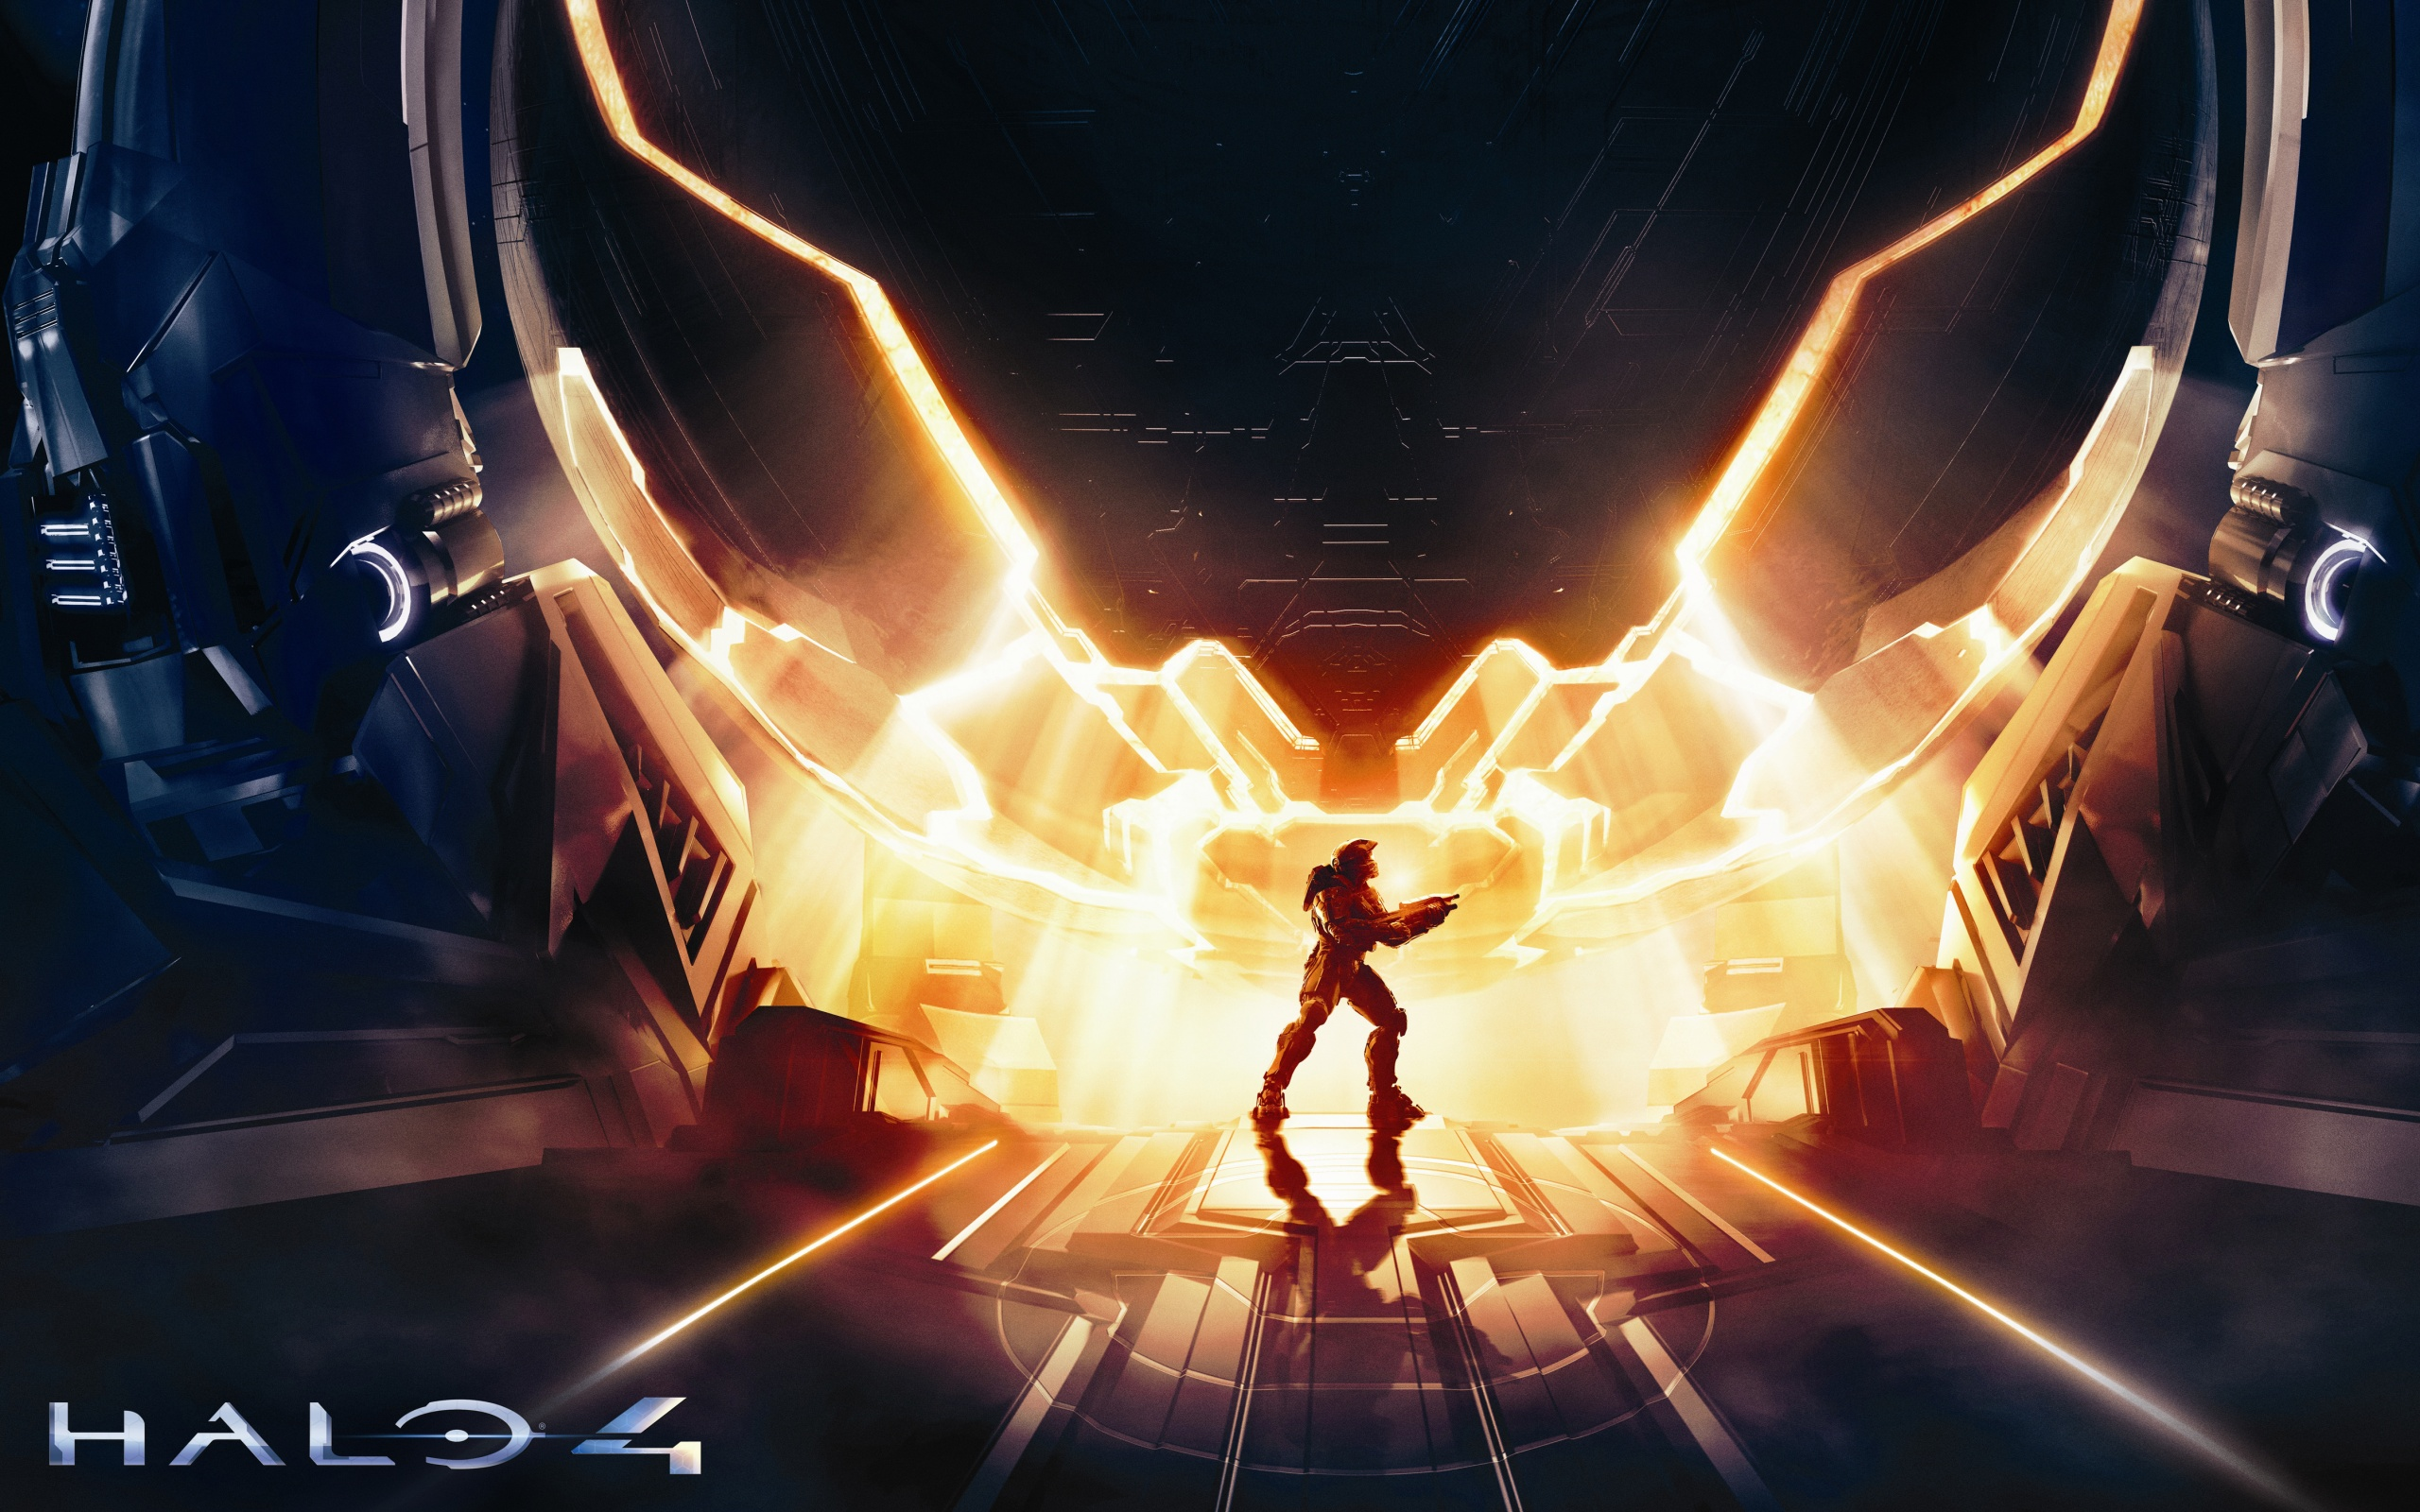 Halo 4 Xbox 360 Game Wallpapers